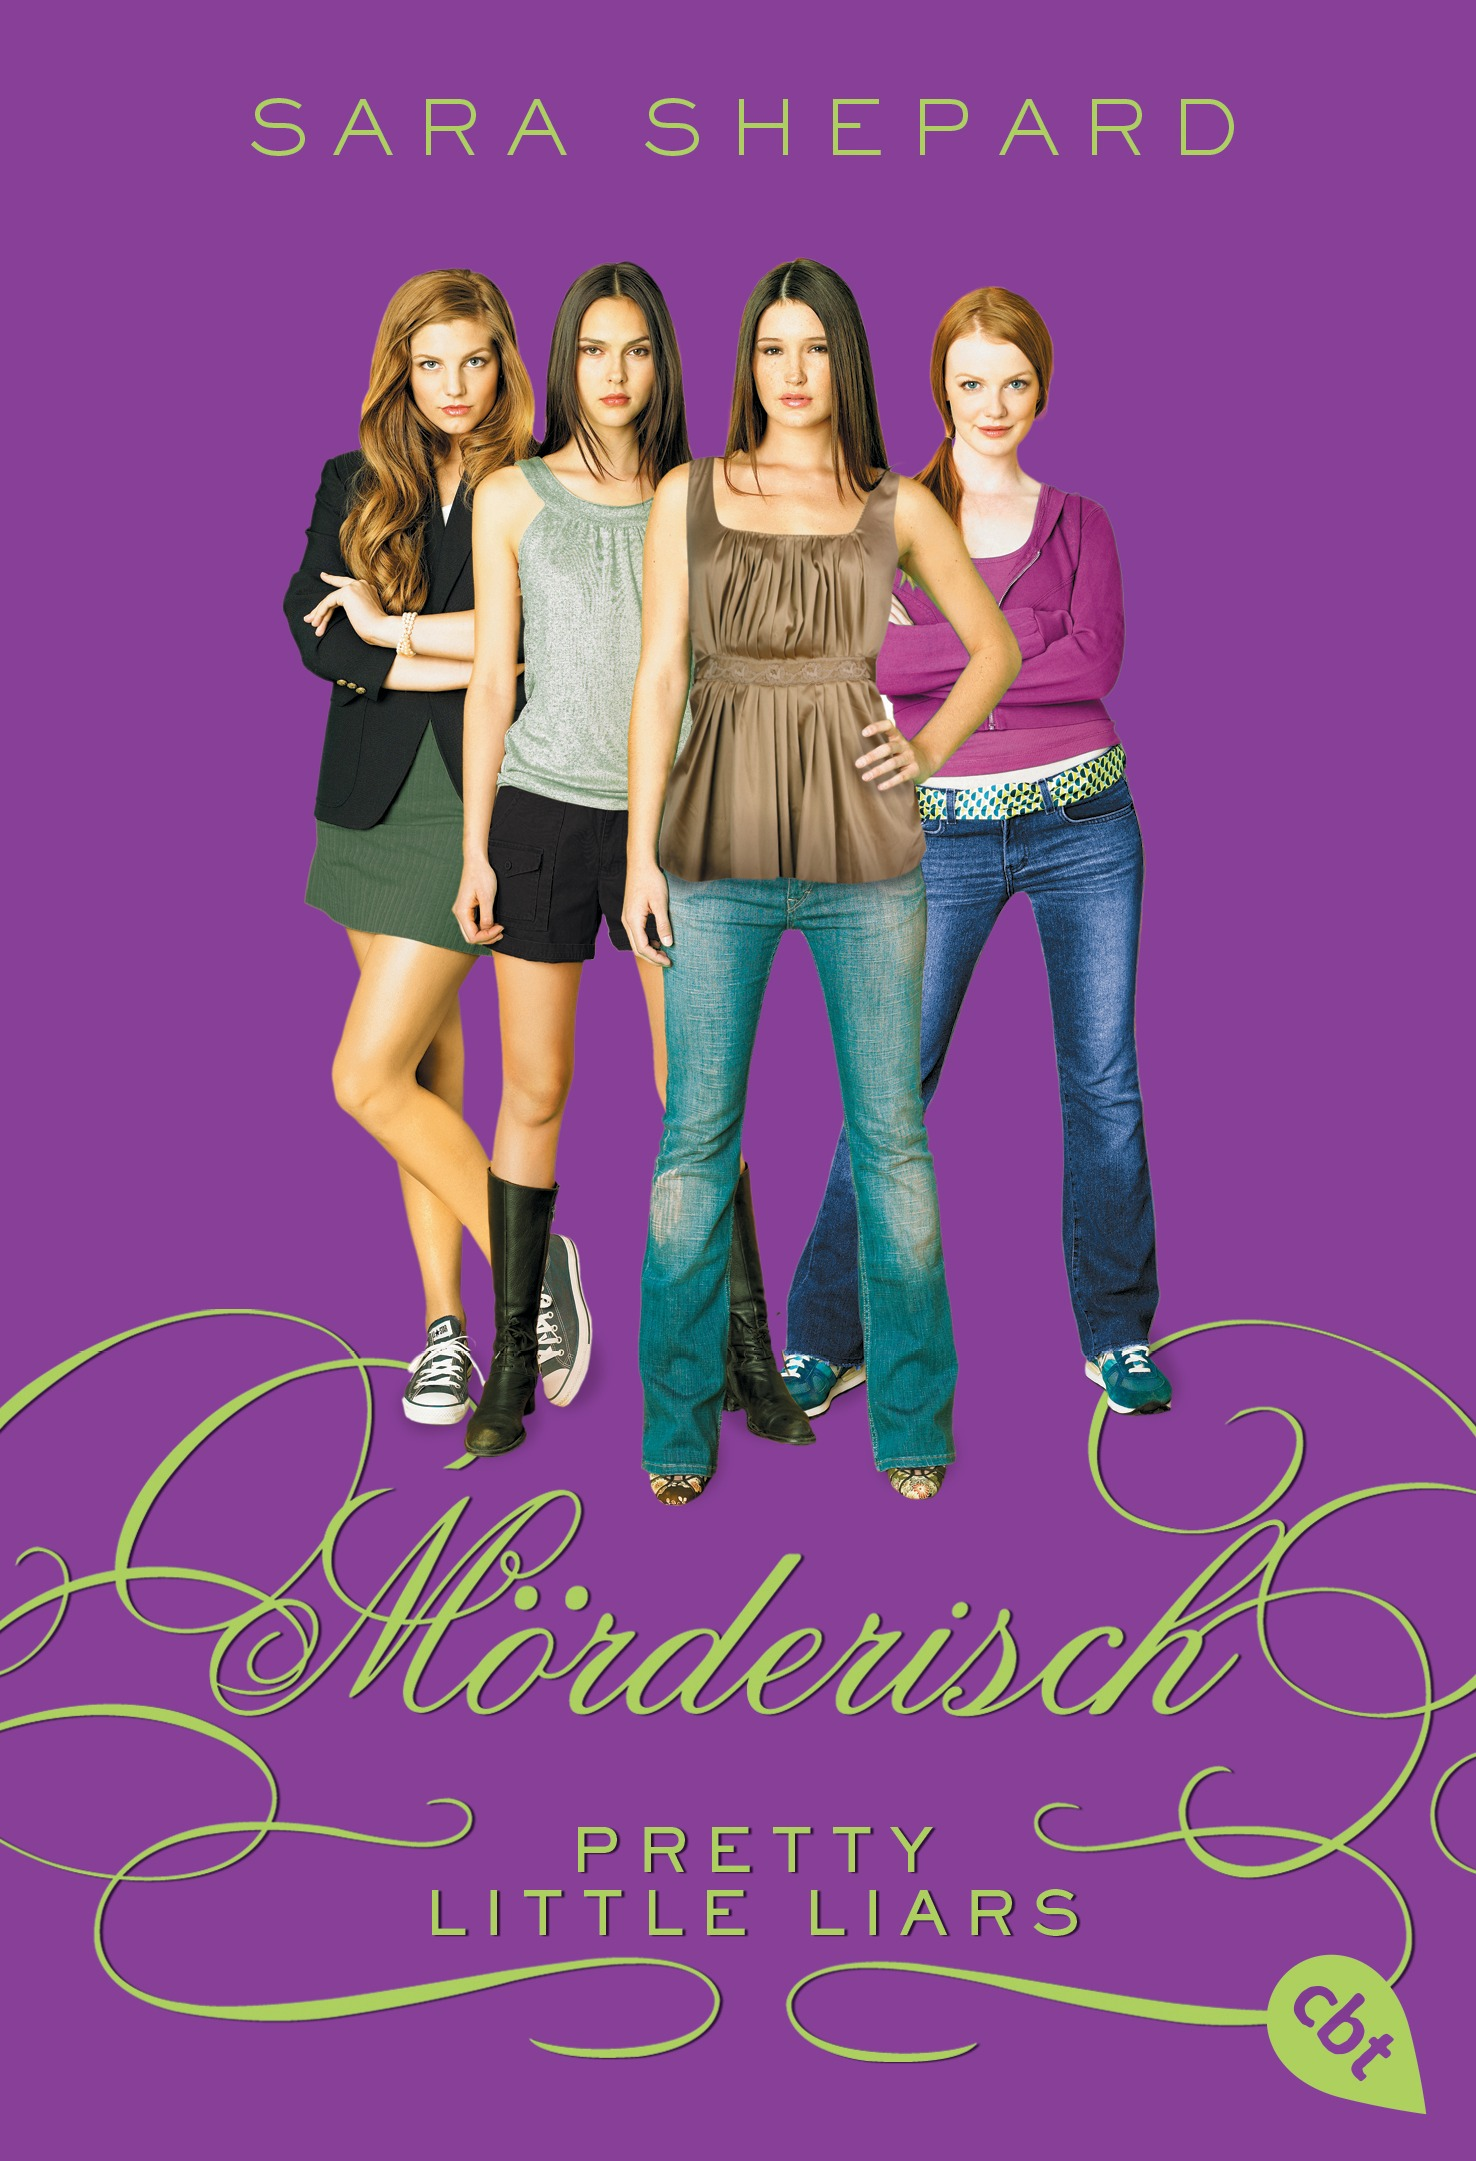 Pretty Little Liars - Mörderisch: Band 6 - Sara Shepard